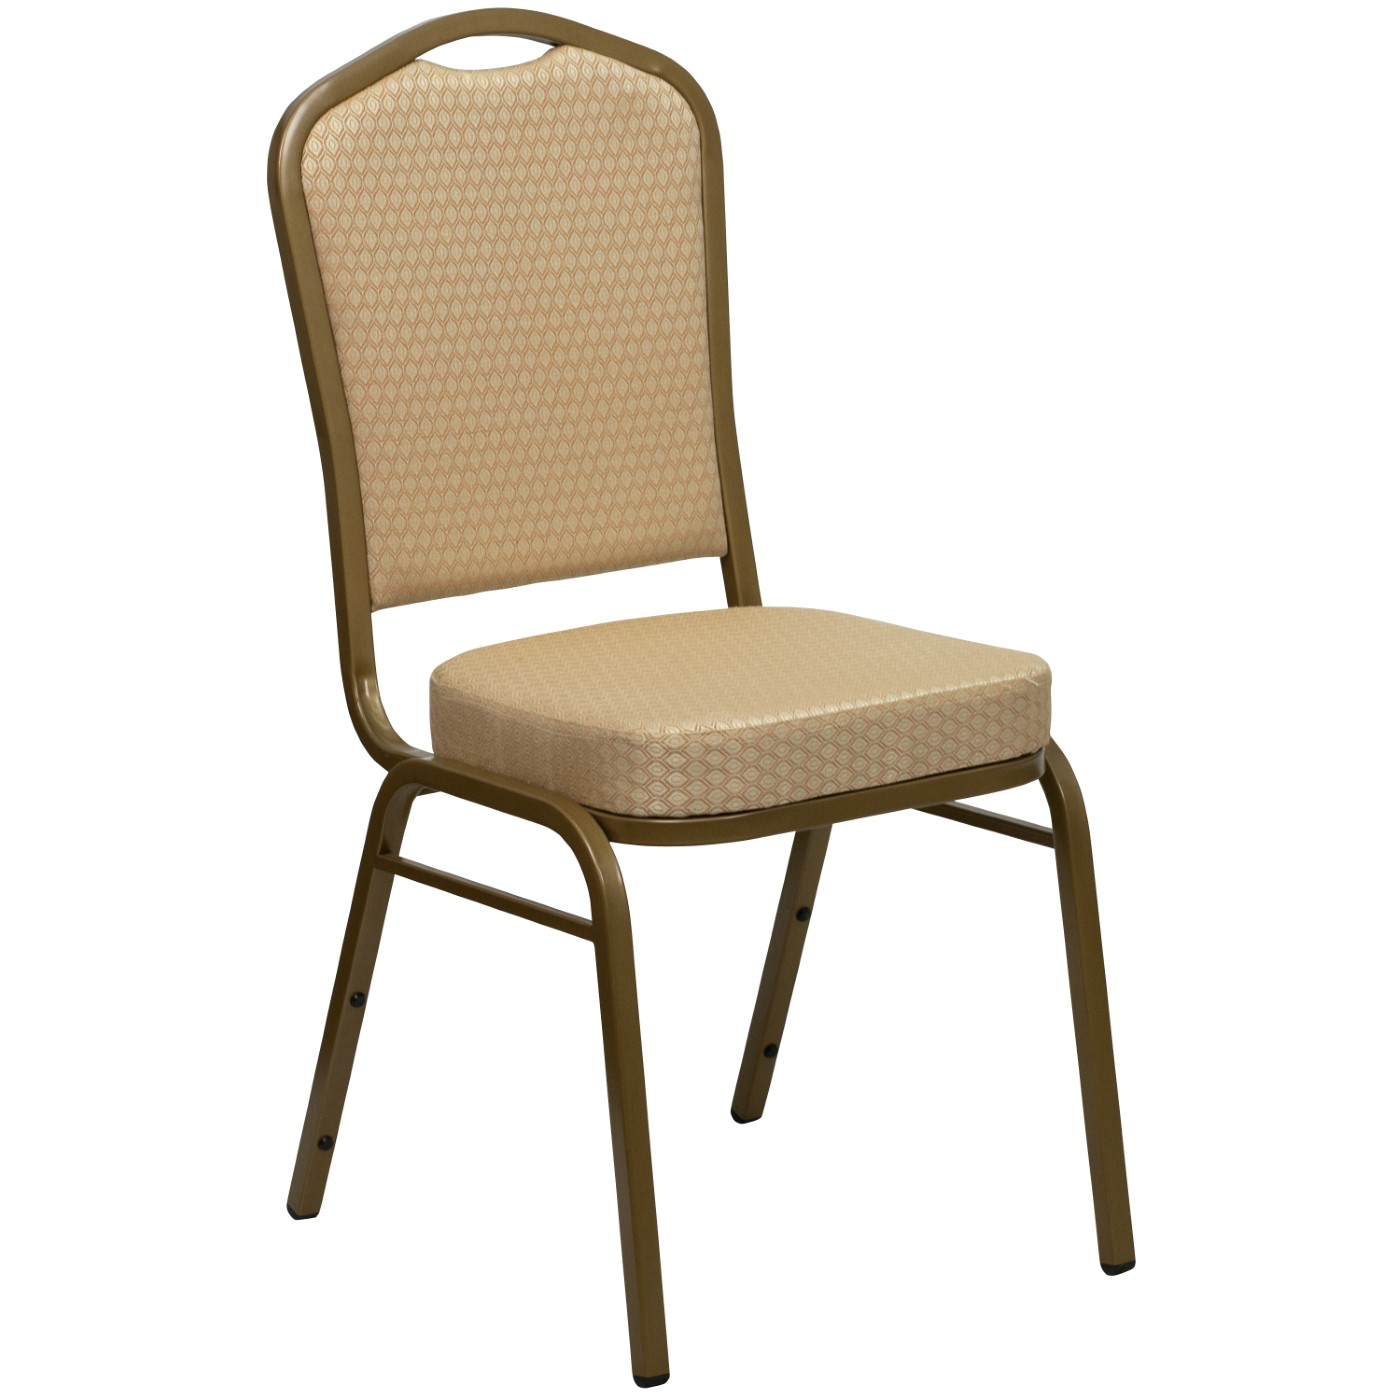 TOUGH ENOUGH Series Crown Back Stacking Banquet Chair in Beige Patterned Fabric - Gold Frame